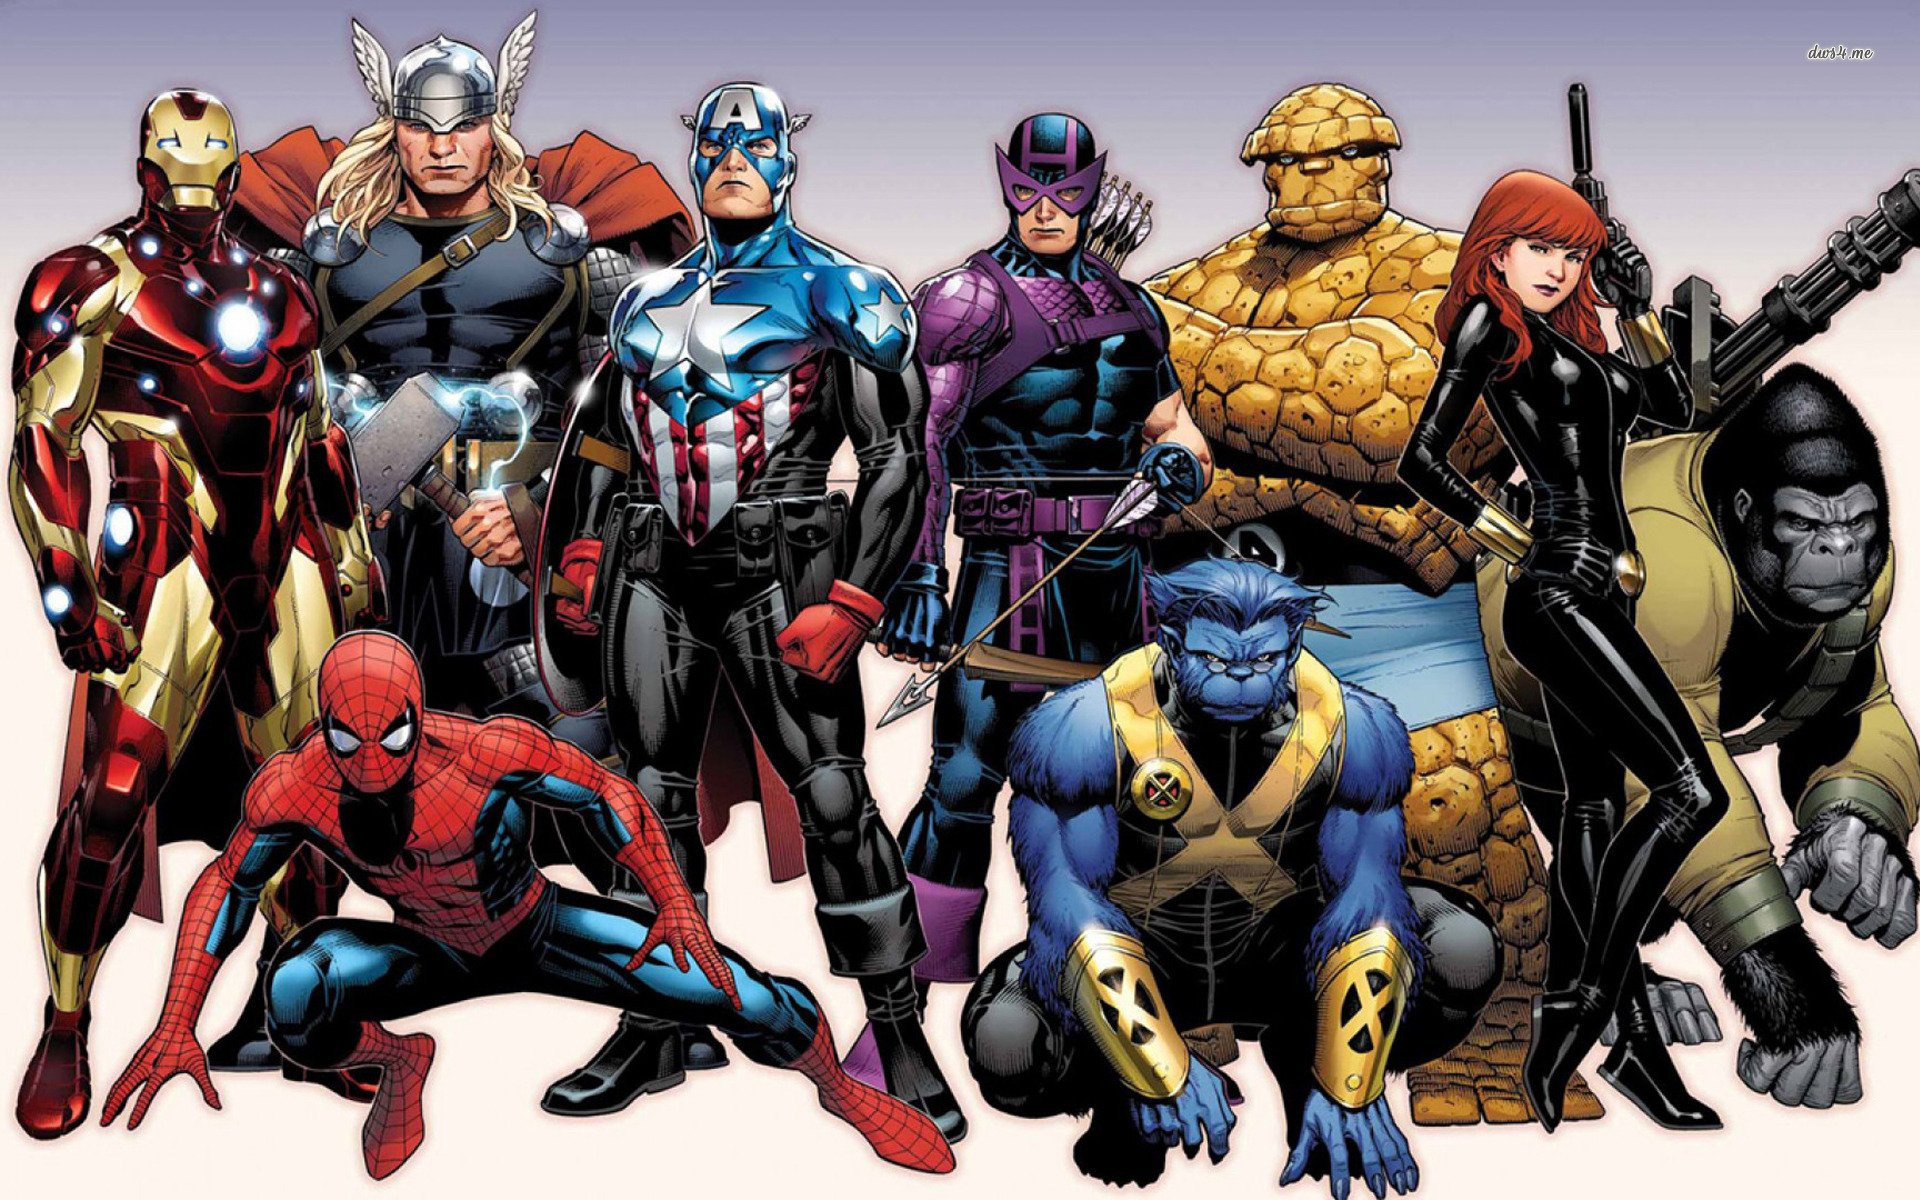 Marvel Malvorlagen Marvel Superhero The Marvel Super: Fondos De Pantalla De Marvel Comics, Wallpapers HD Gratis